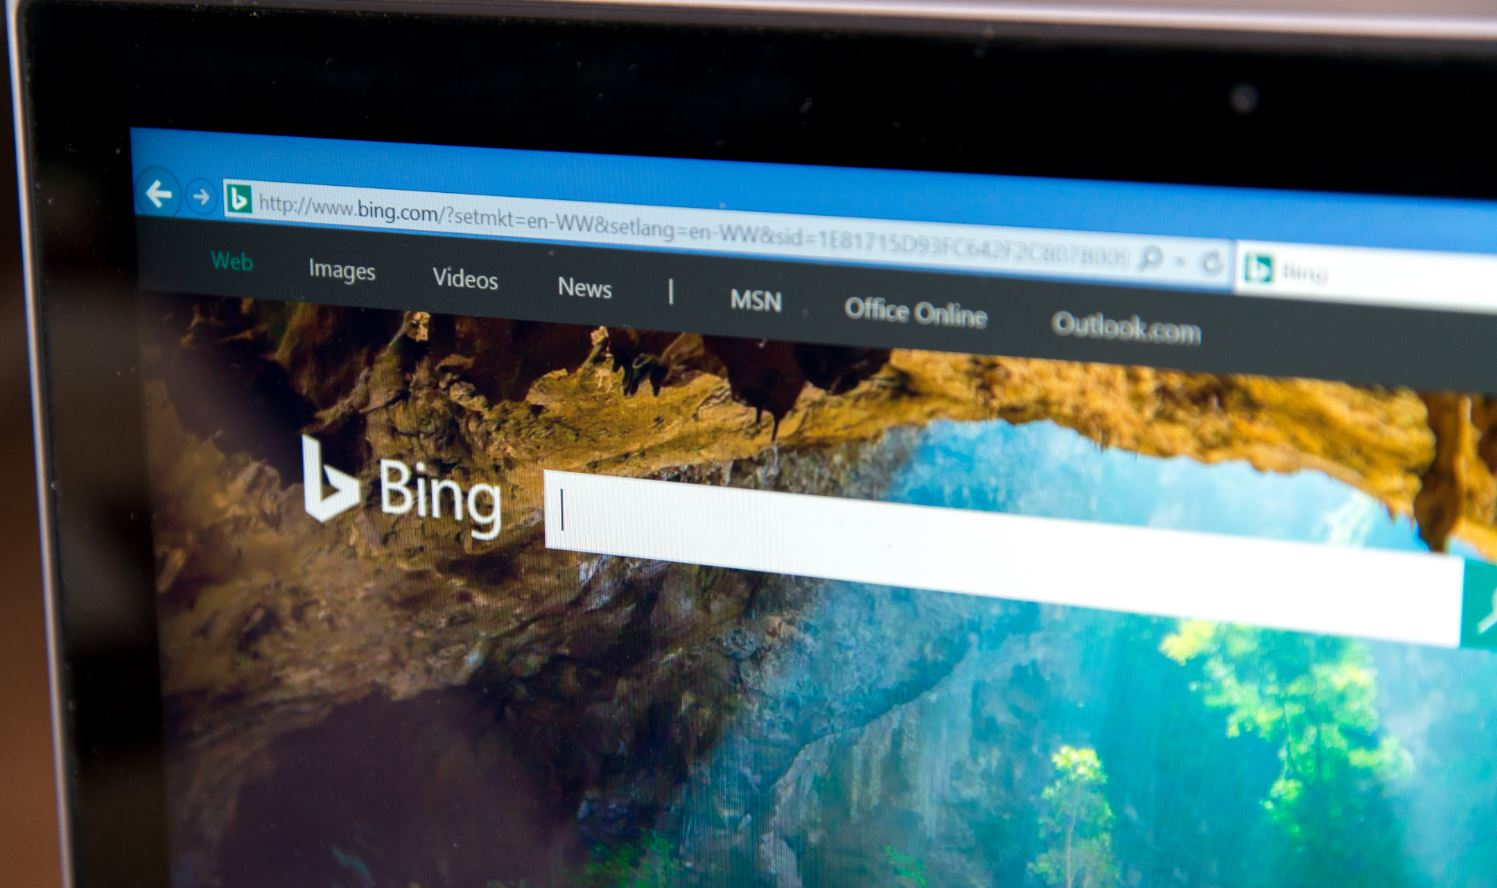 """Who even uses Bing?!"" I hear you cry - we answer the burning question here on our blog  https://t.co/eqB2vnSo5w https://t.co/lPQA4VuQgW"